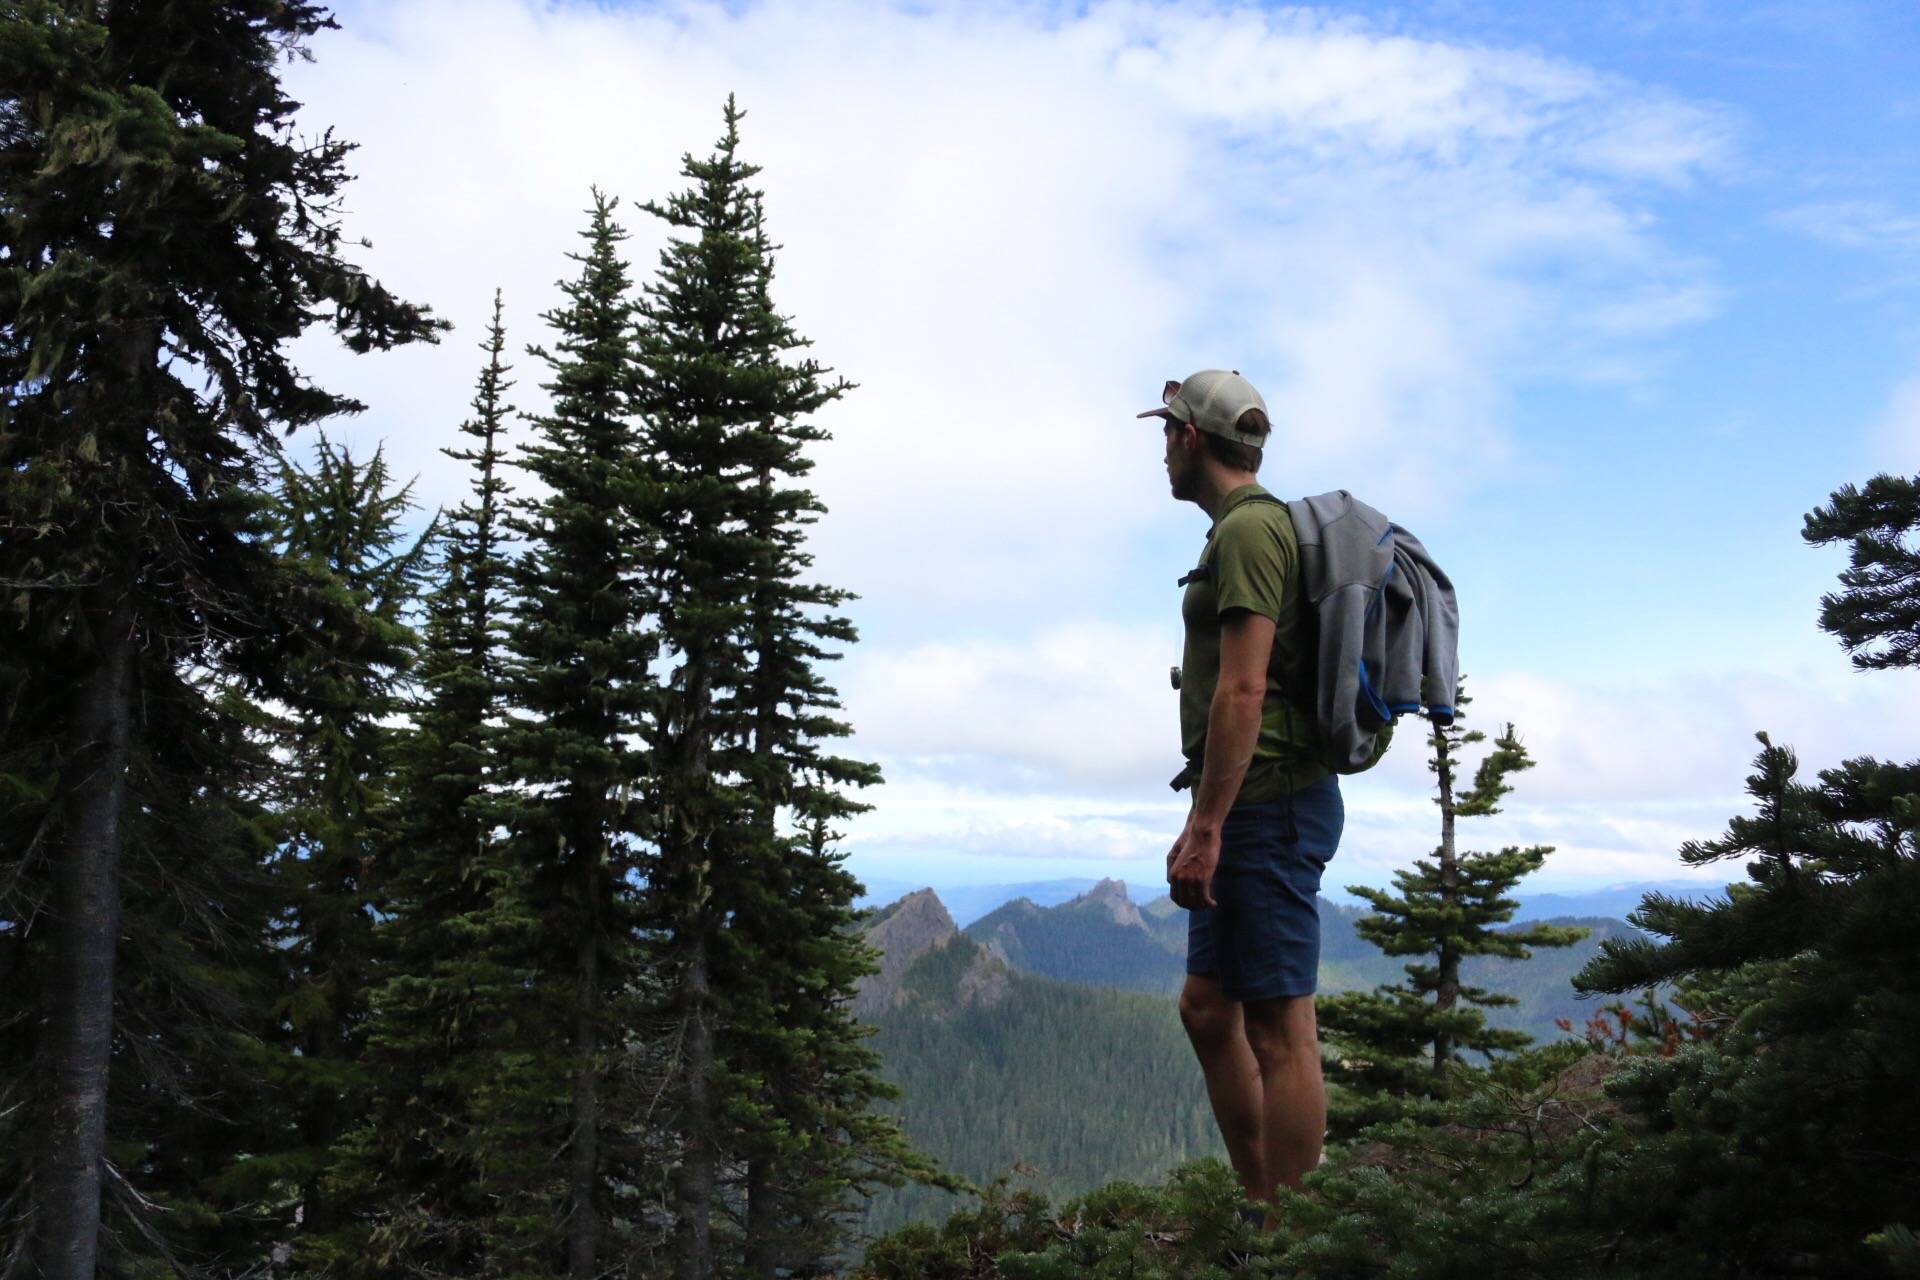 Hiking up to the Top of High Rock Lookout near Mt. Rainer, WA